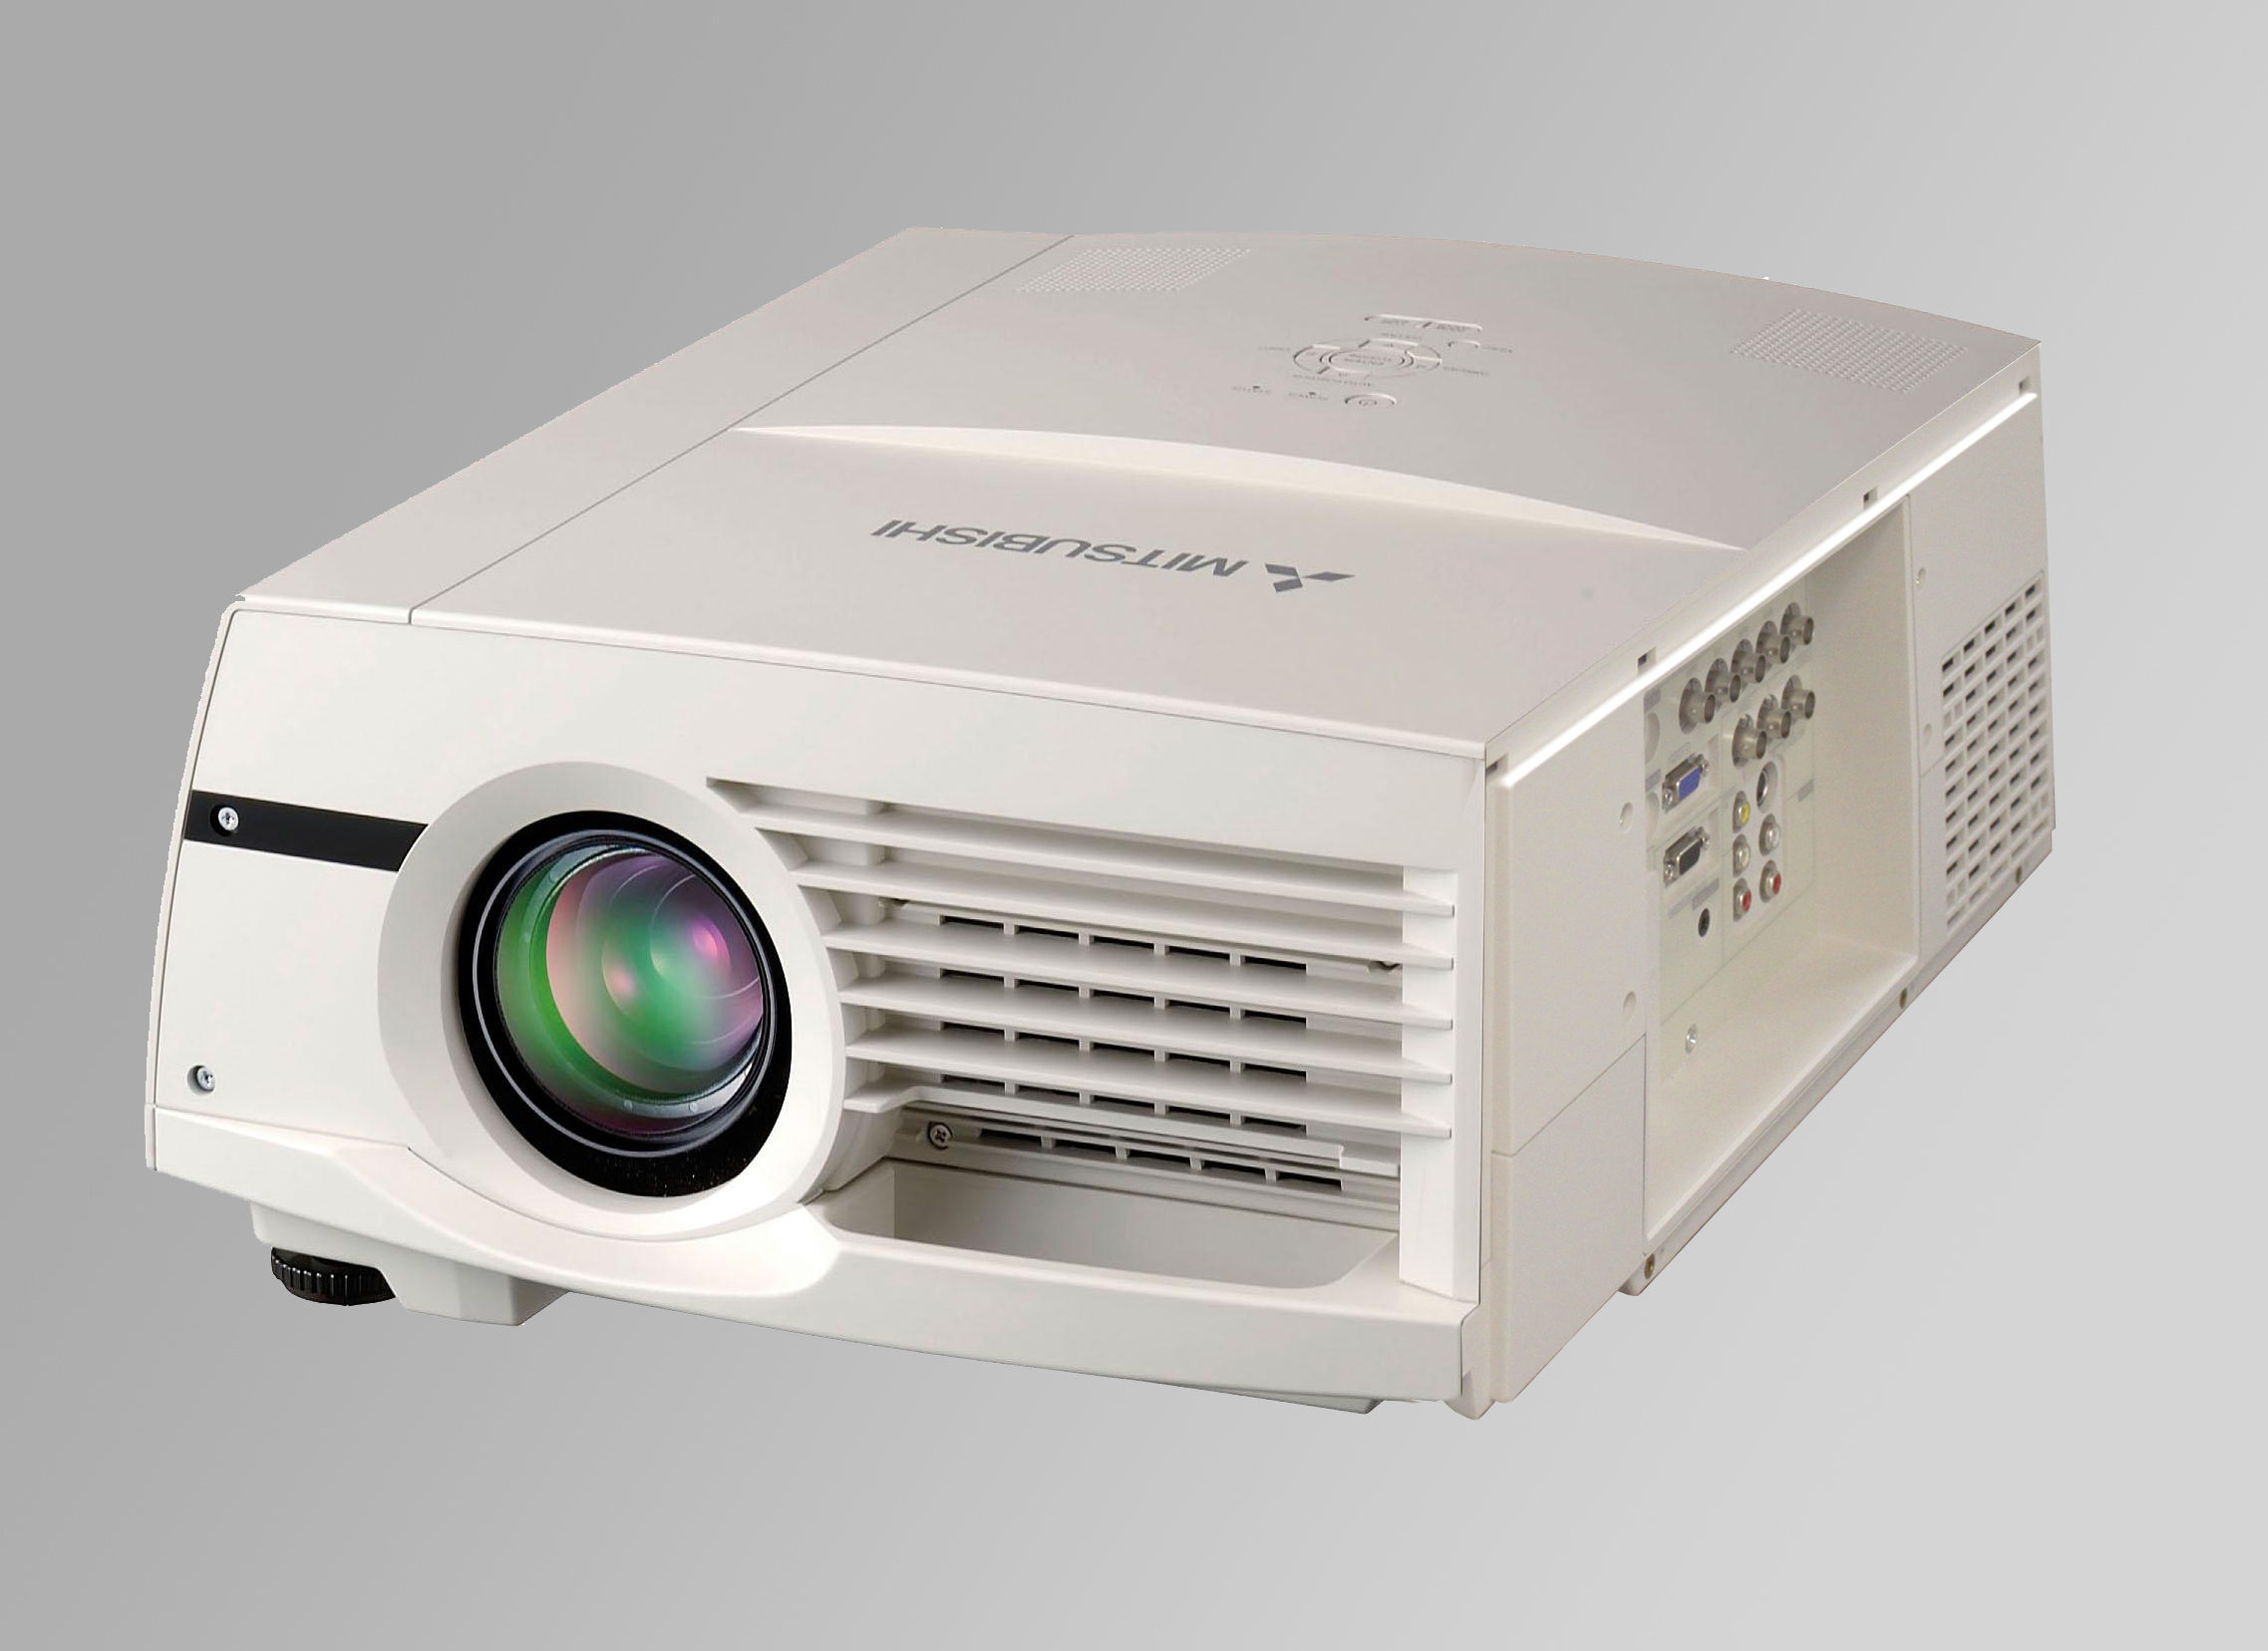 mitsubishi fl7000u projector inter video production equipment rentals rh intervideo co Mitsubishi Projector 110 SD Mitsubishi M1ky LCD Projector